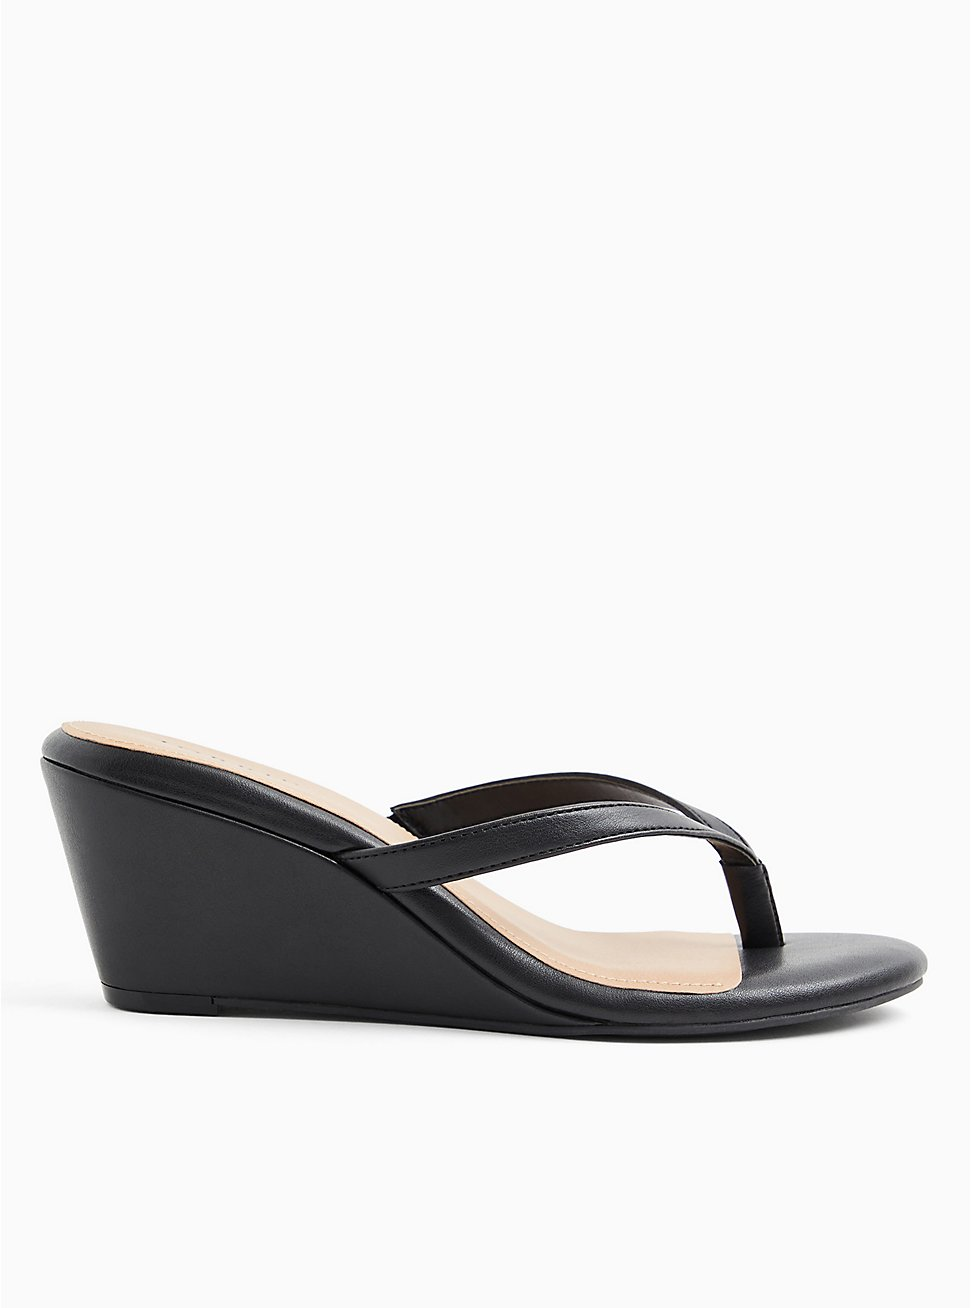 Black Faux Leather Midi Wedge (WW), BLACK, hi-res